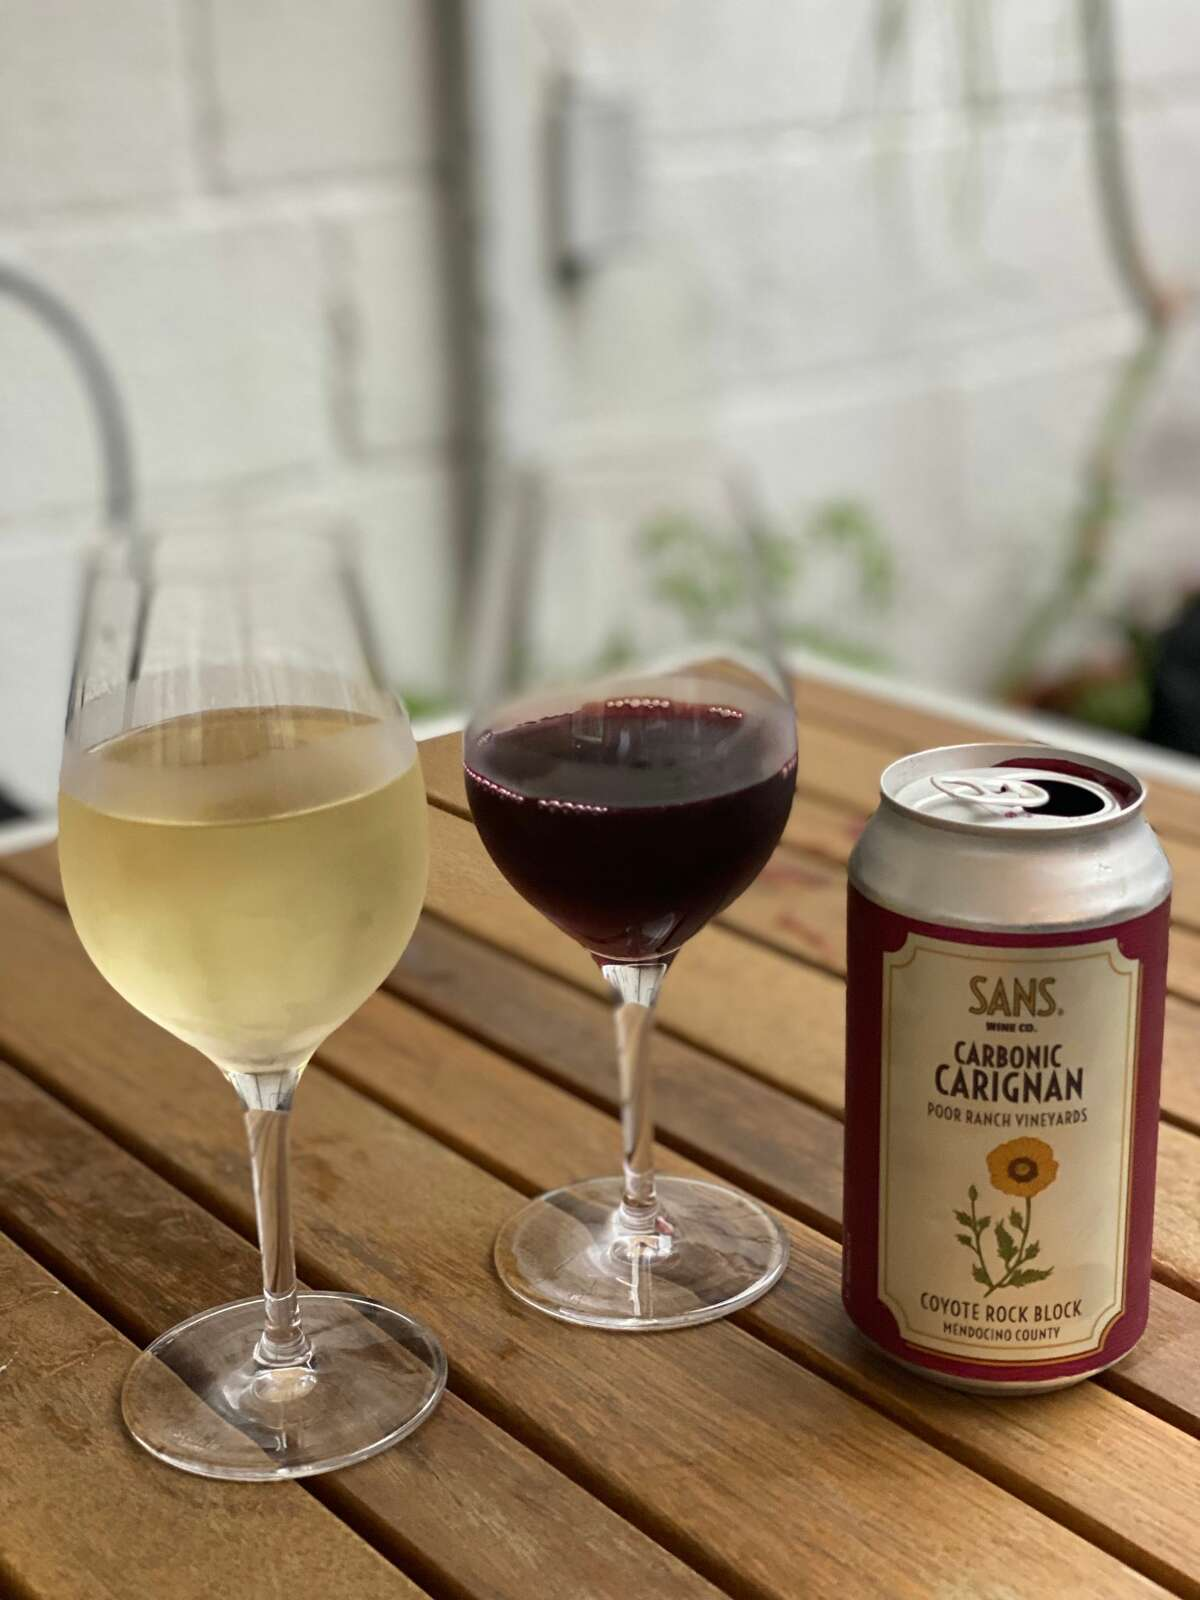 Carignan in a can at Post on Lark in Albany, served chilled, is full of plum jam and blackberry notes but still dry as a bone. (Susie Davidson Powell/for the Times Union.)